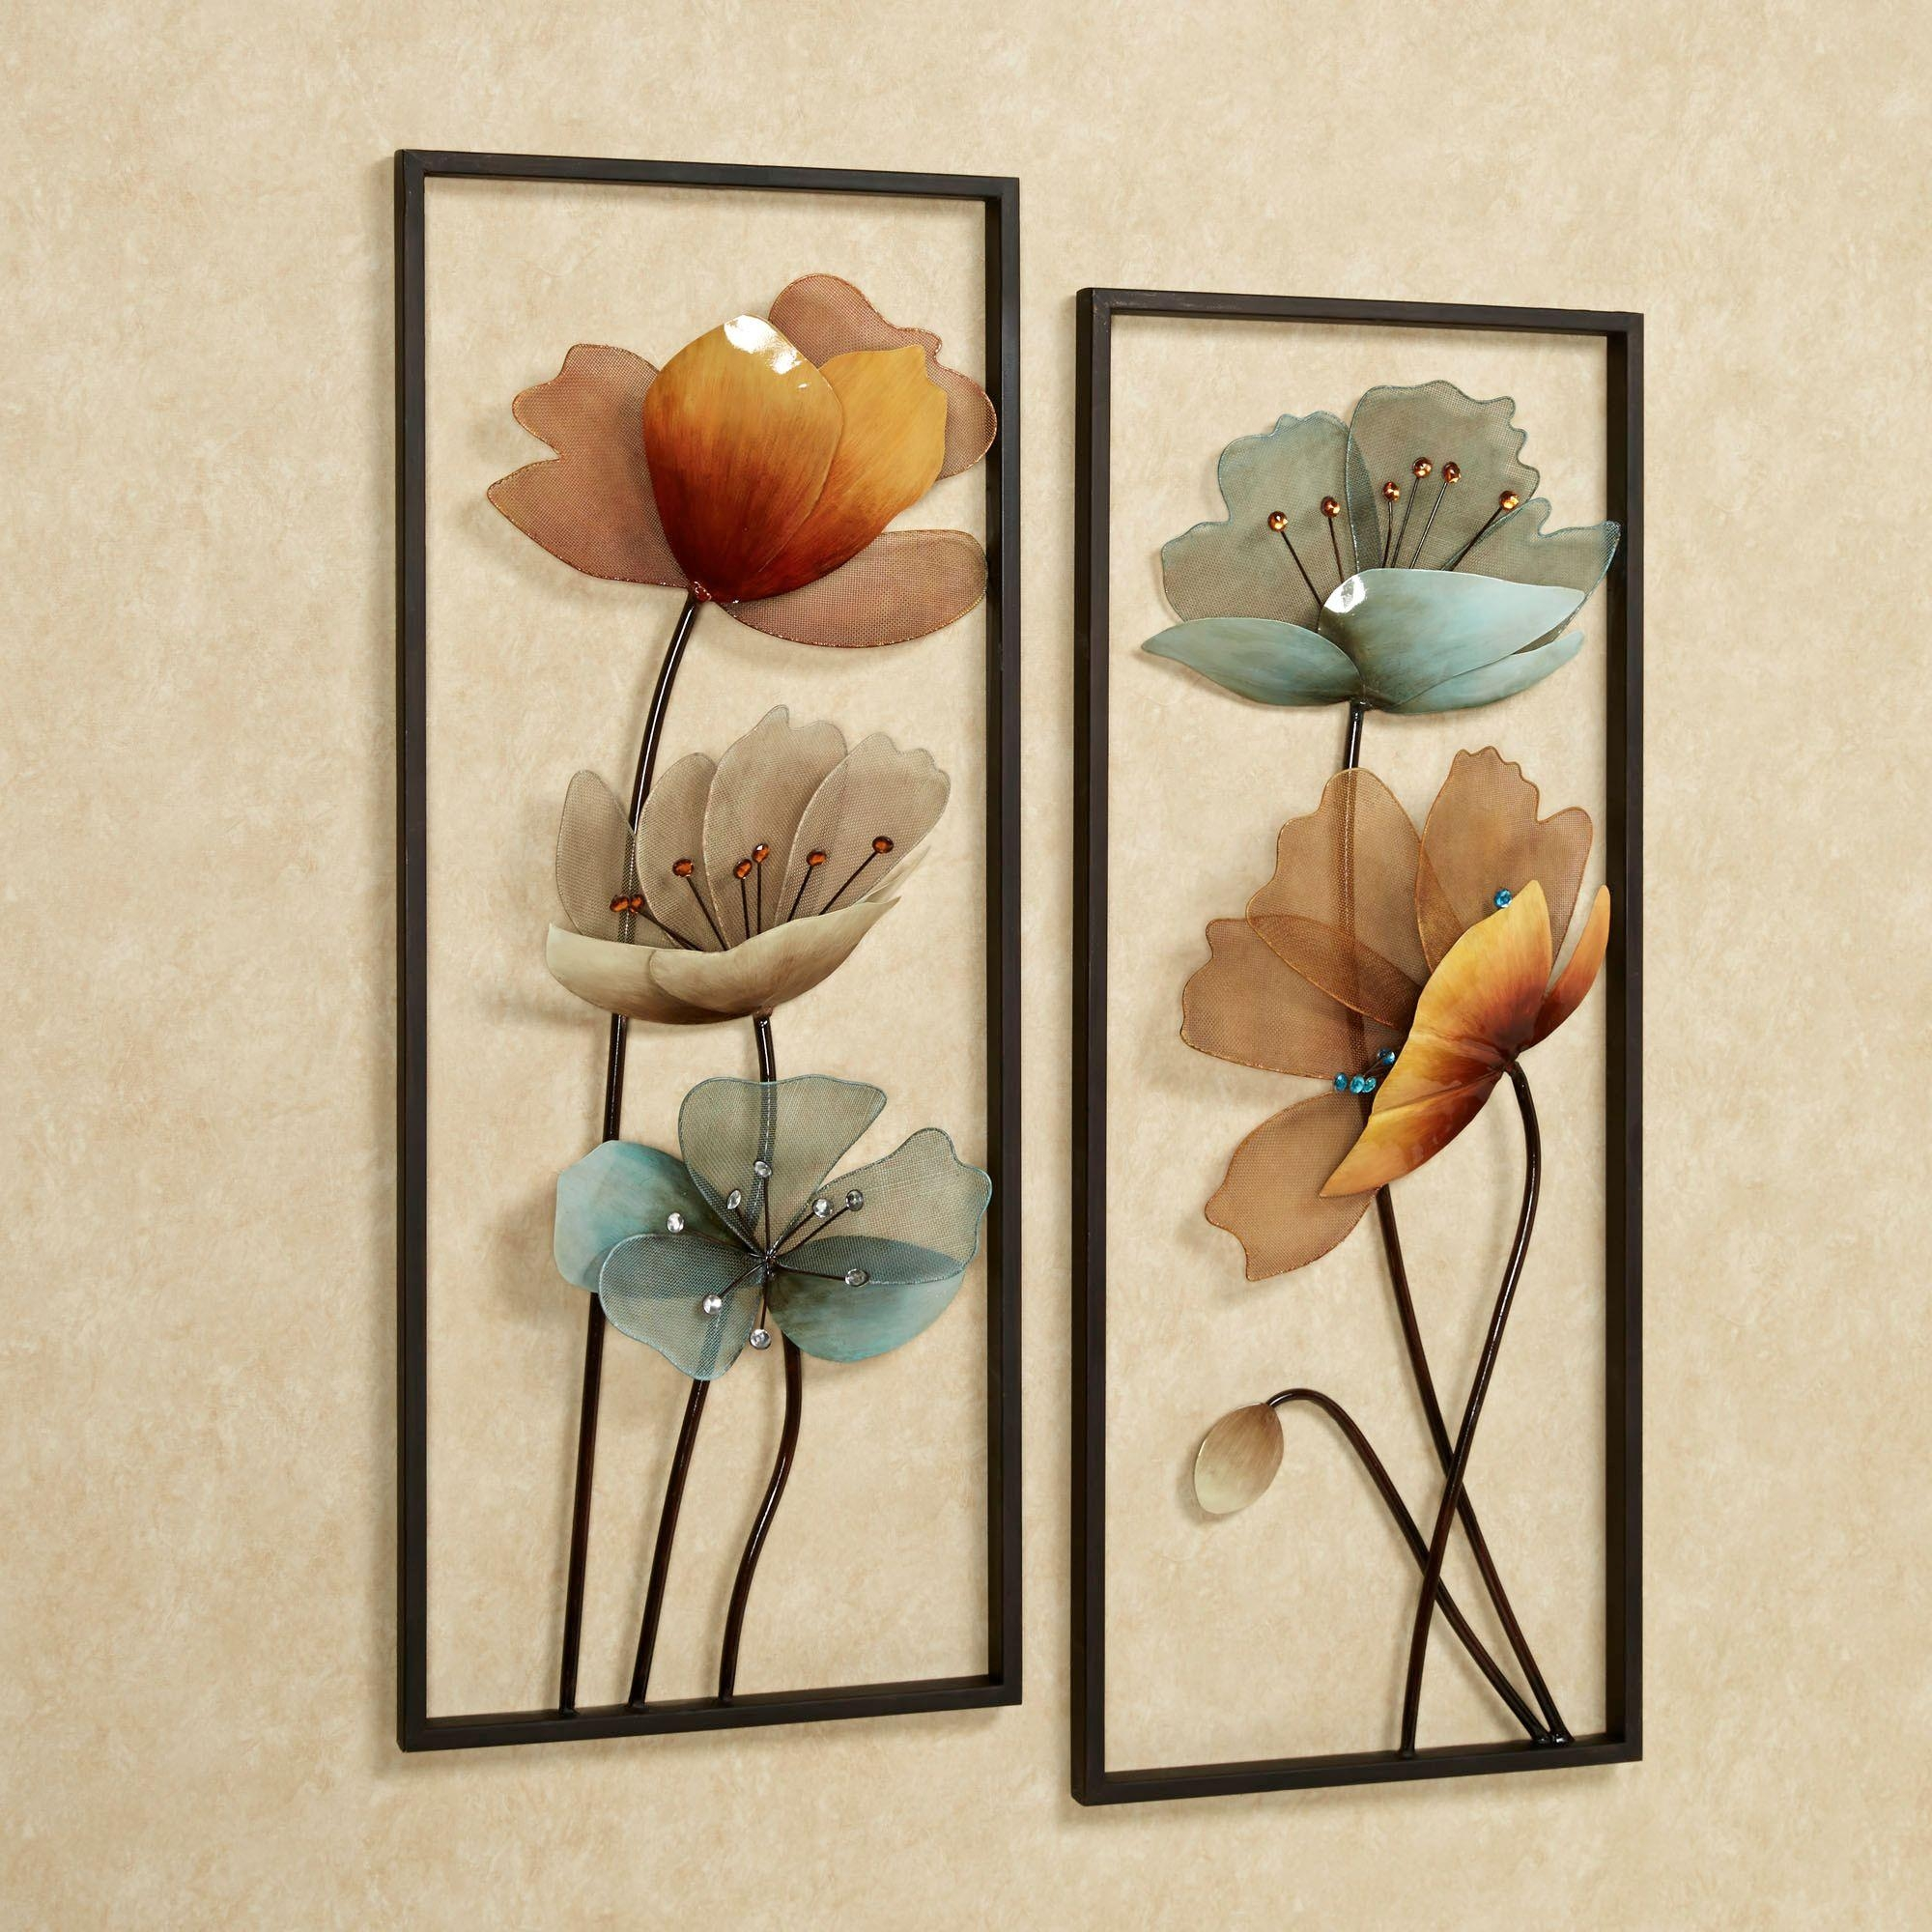 Enchanting Decorative Metal Wall Decor Decorative Metal Wall Art Inside Metal Art For Wall Hangings (View 10 of 20)